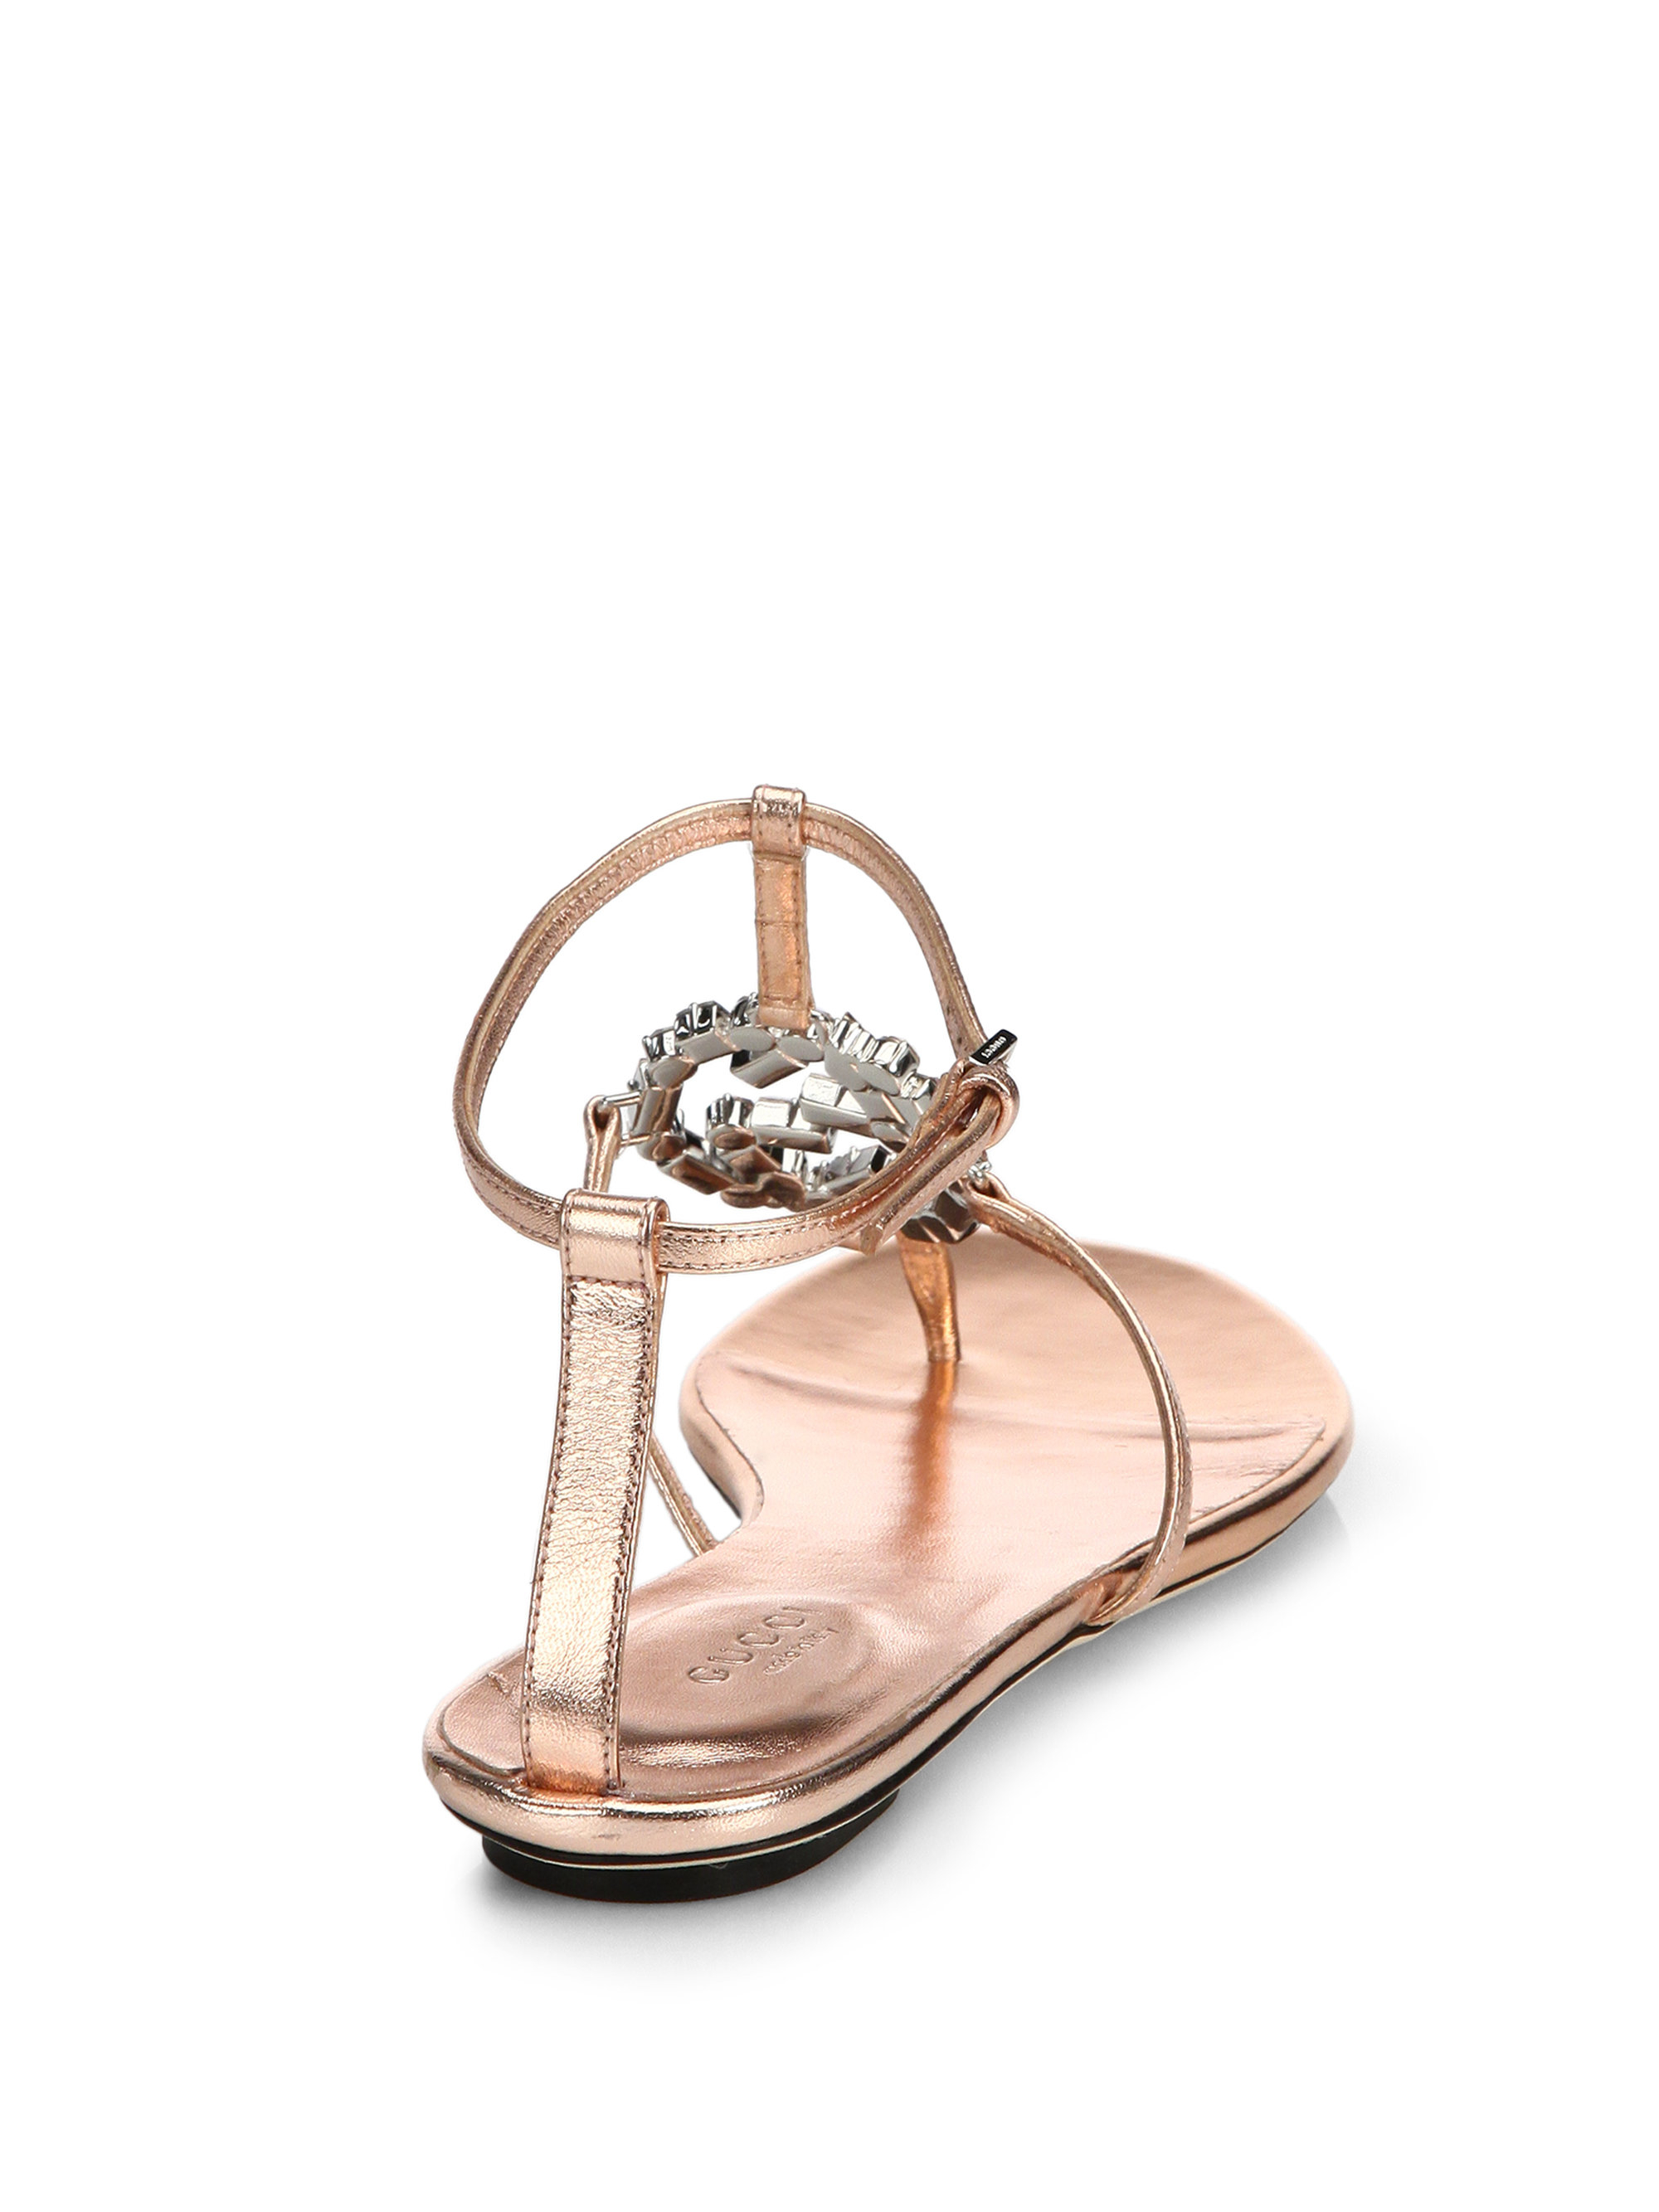 9eb63a2b39a7 Lyst - Gucci Gg Sparkling Crystal   Leather Sandals in Pink